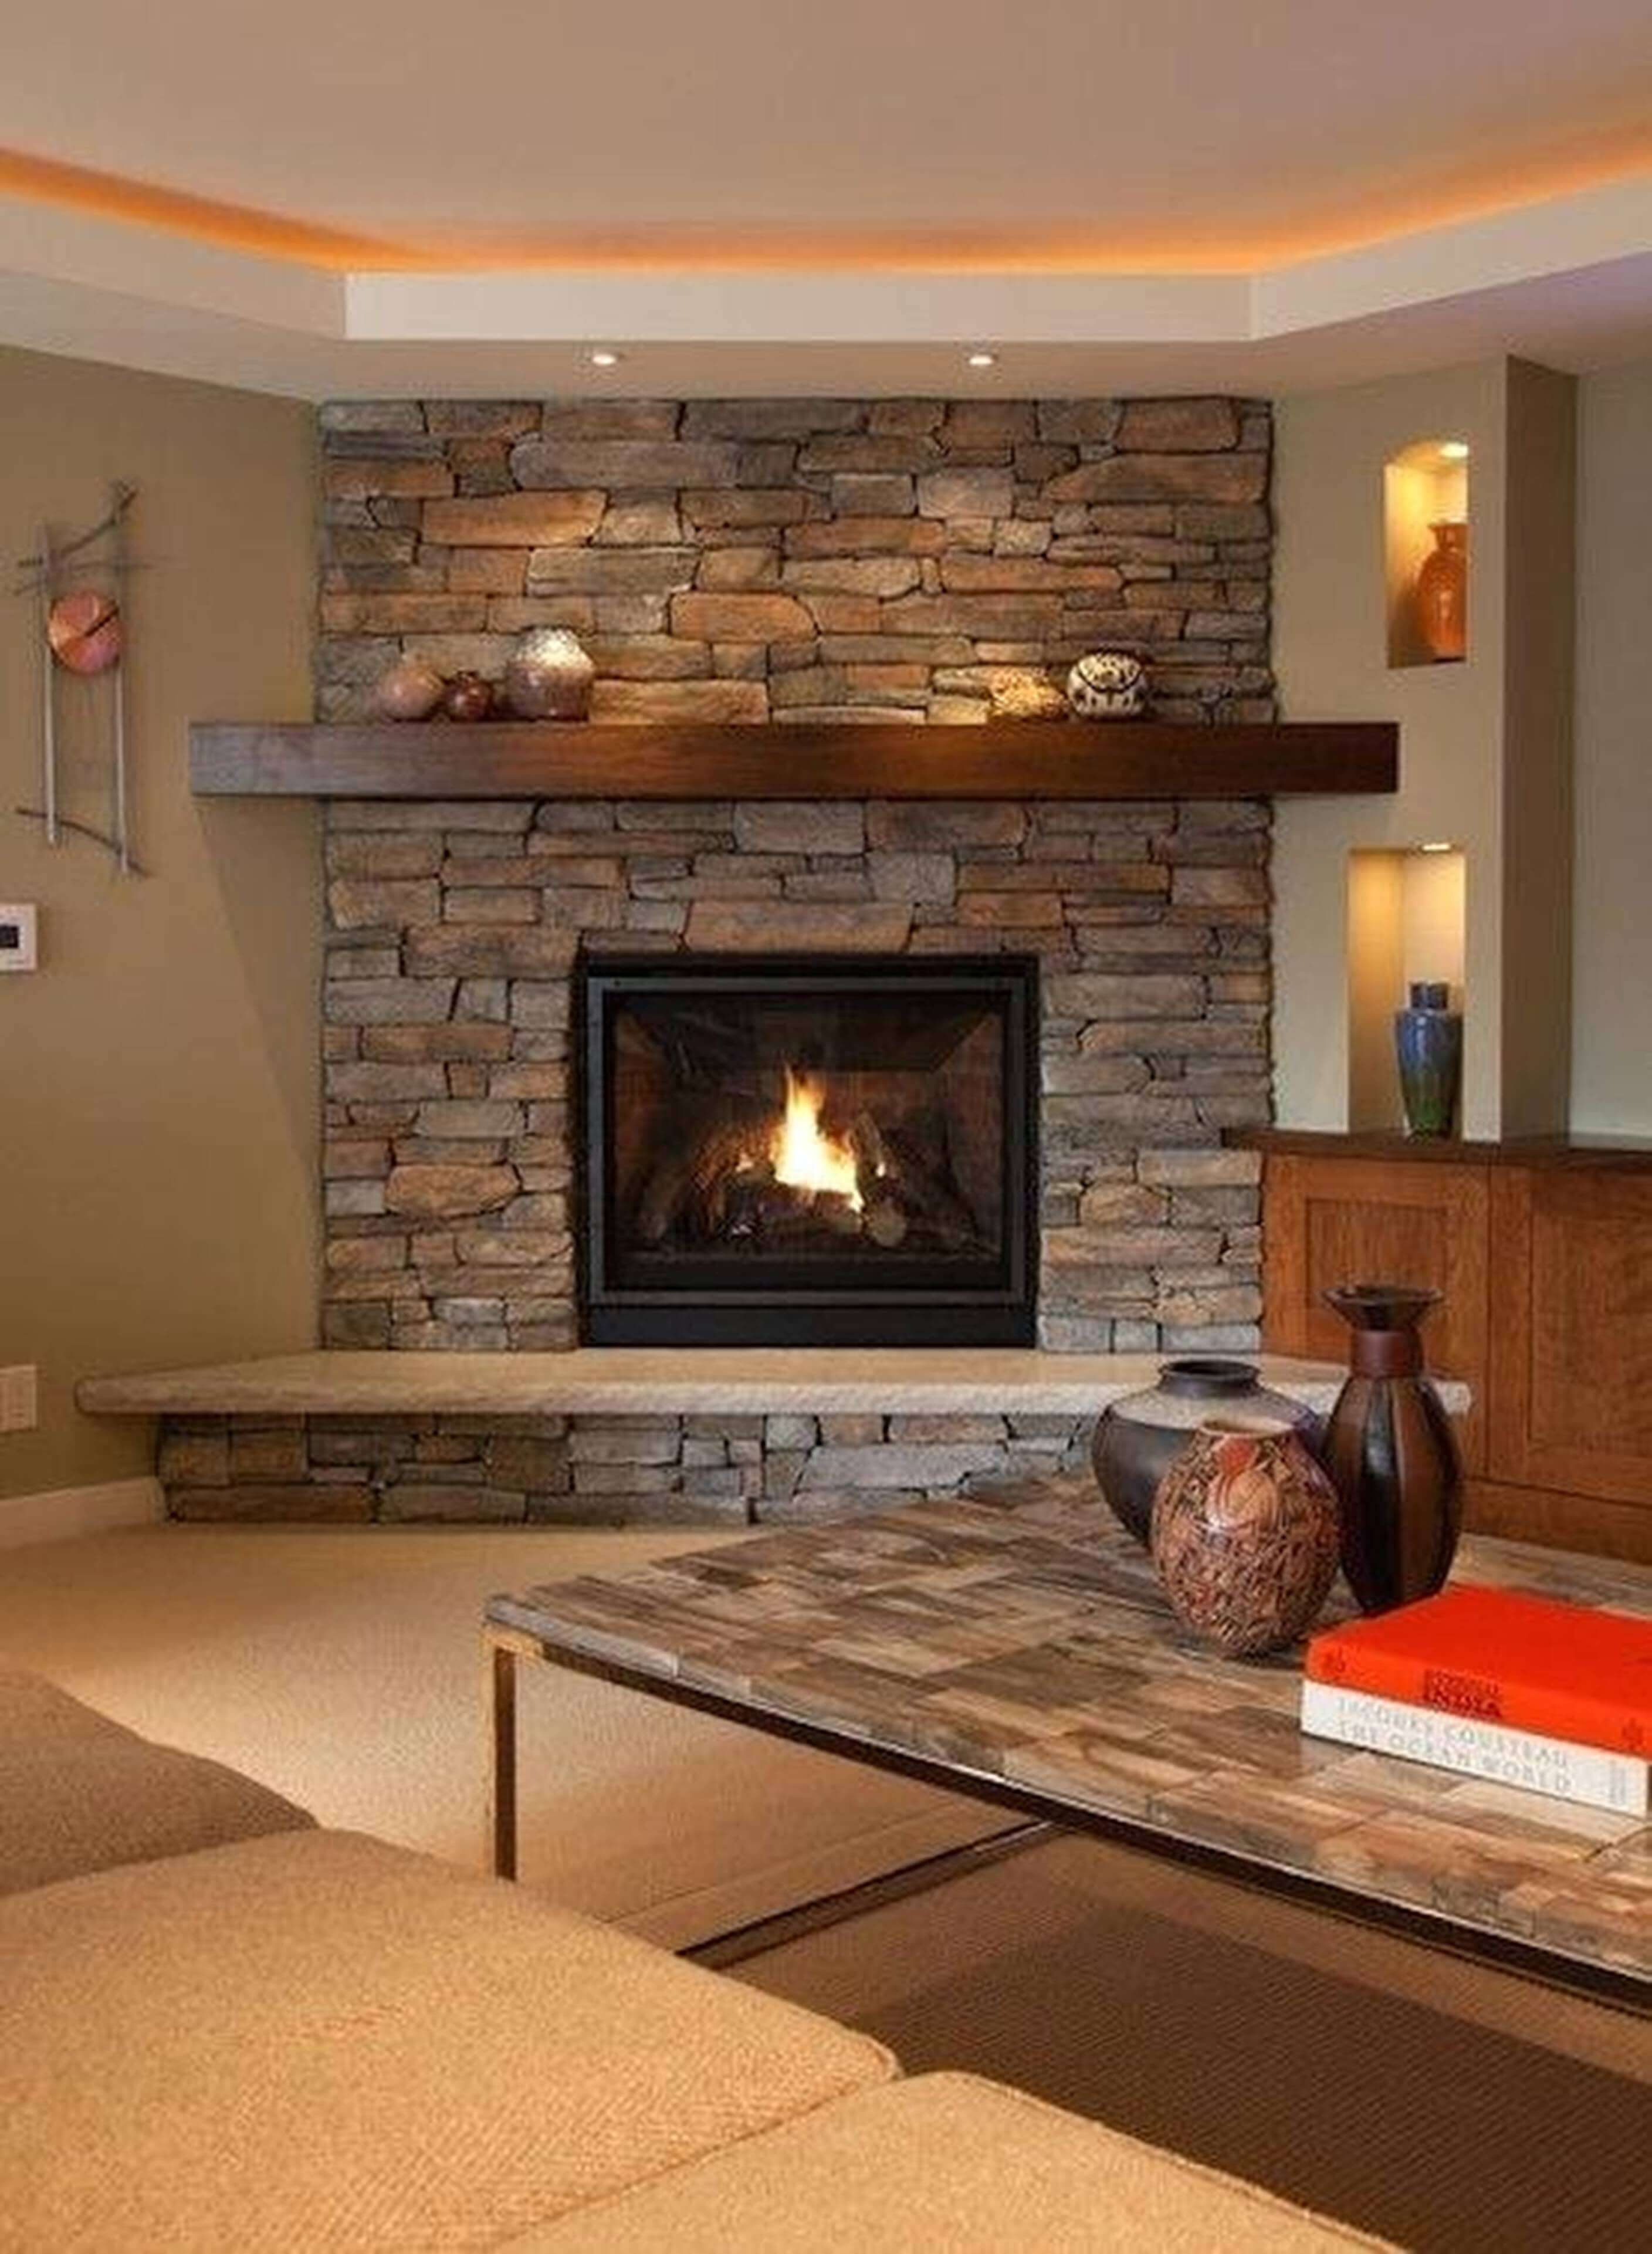 A Fireplace Is An Architectural Structure Designed To Contain A Fire And Used For The Rel Corner Fireplace Living Room Corner Fireplace Makeover Home Fireplace